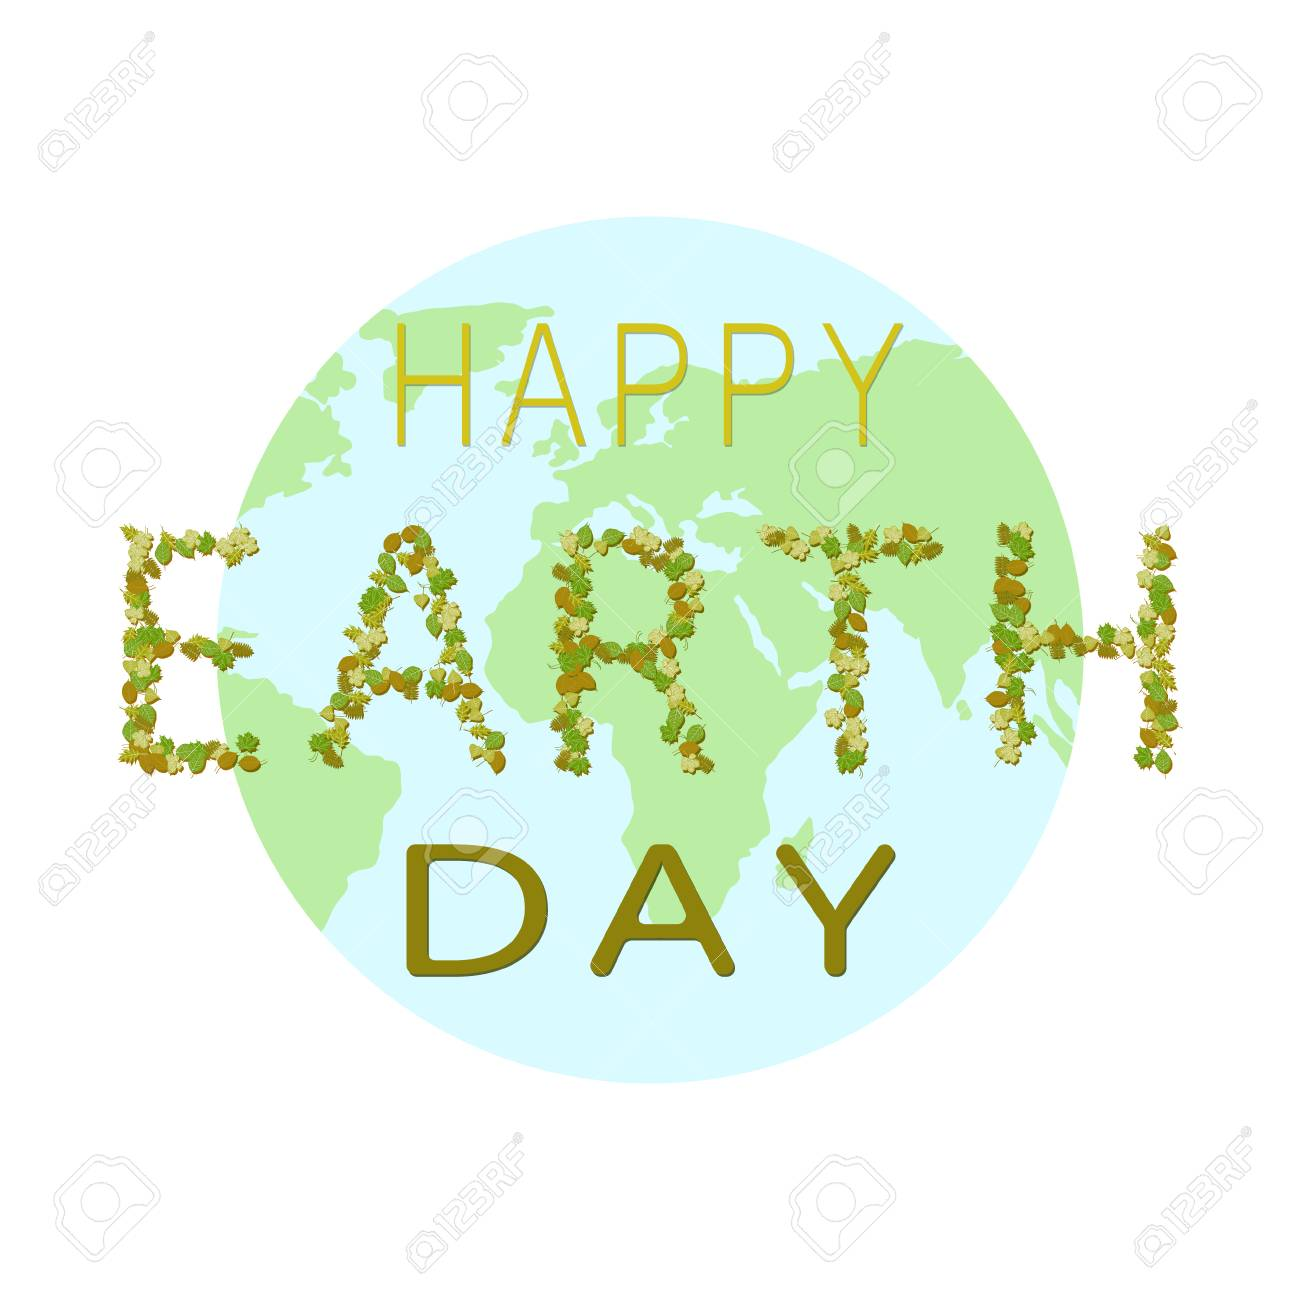 Earth day with map earth and letters from the leaves of trees earth day with map earth and letters from the leaves of trees vector illustration gumiabroncs Images